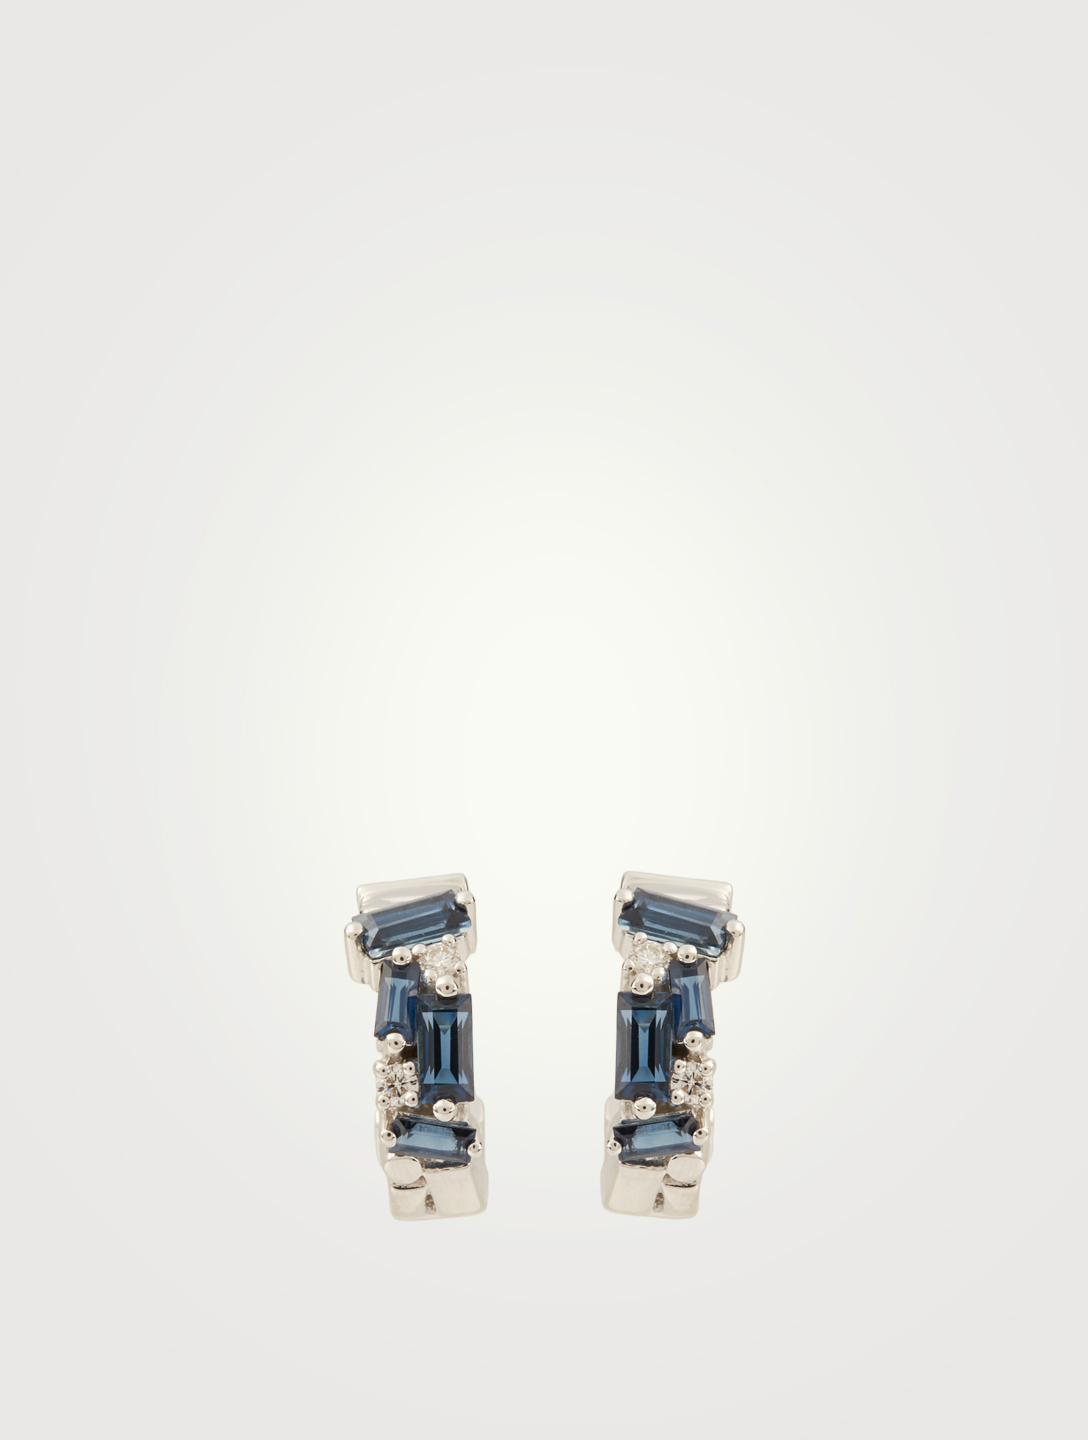 SUZANNE KALAN Fireworks 18K White Gold Hoop Earrings With Blue Sapphire And Diamonds Women's Metallic